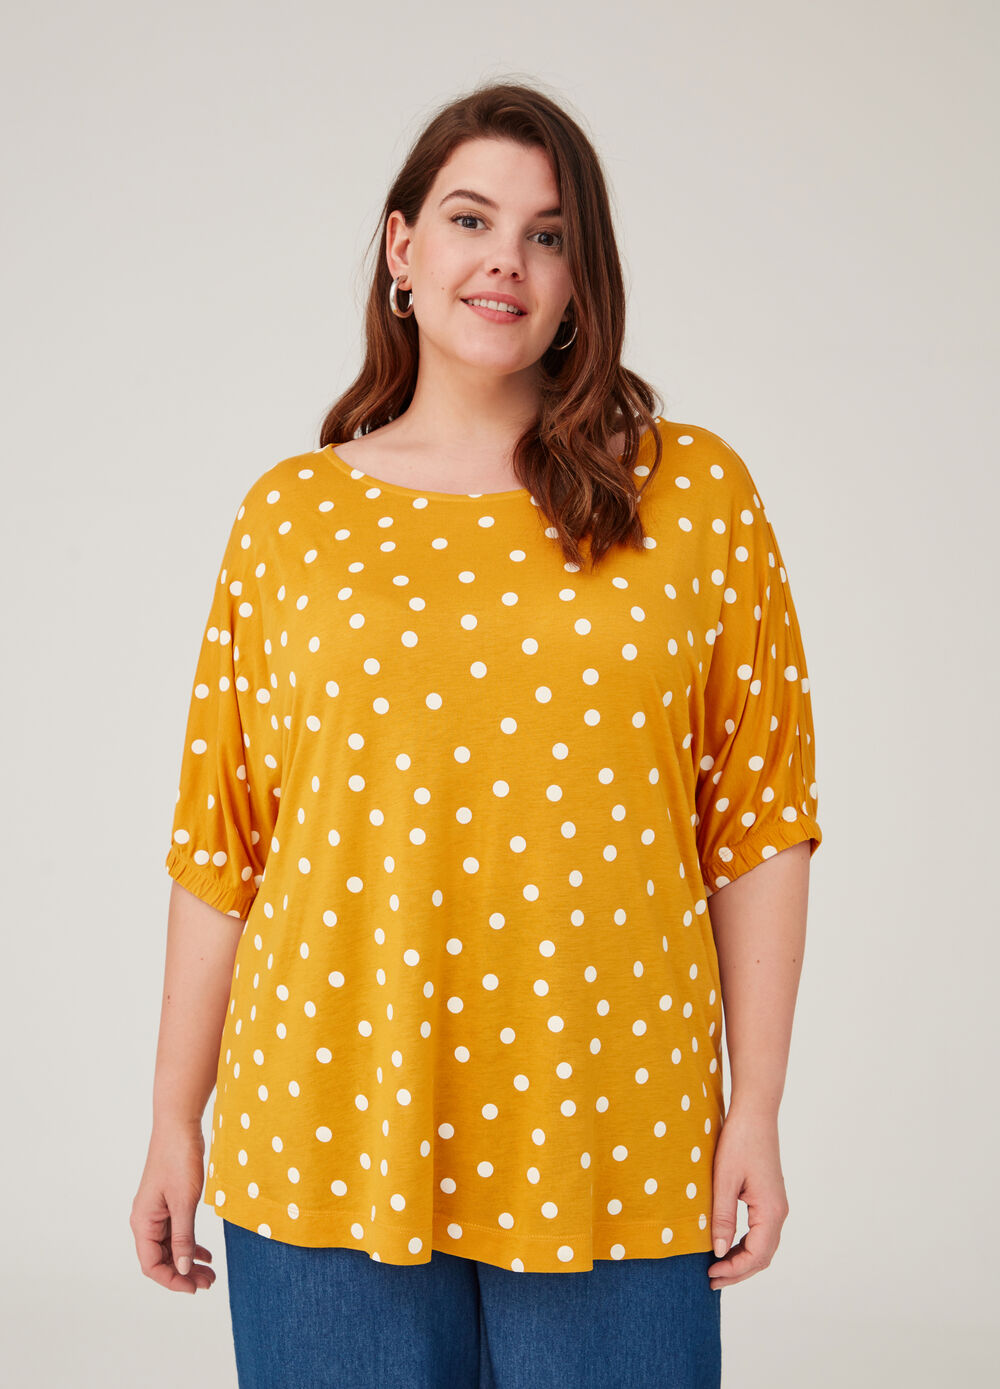 Curvy patterned T-shirt in 100% viscose